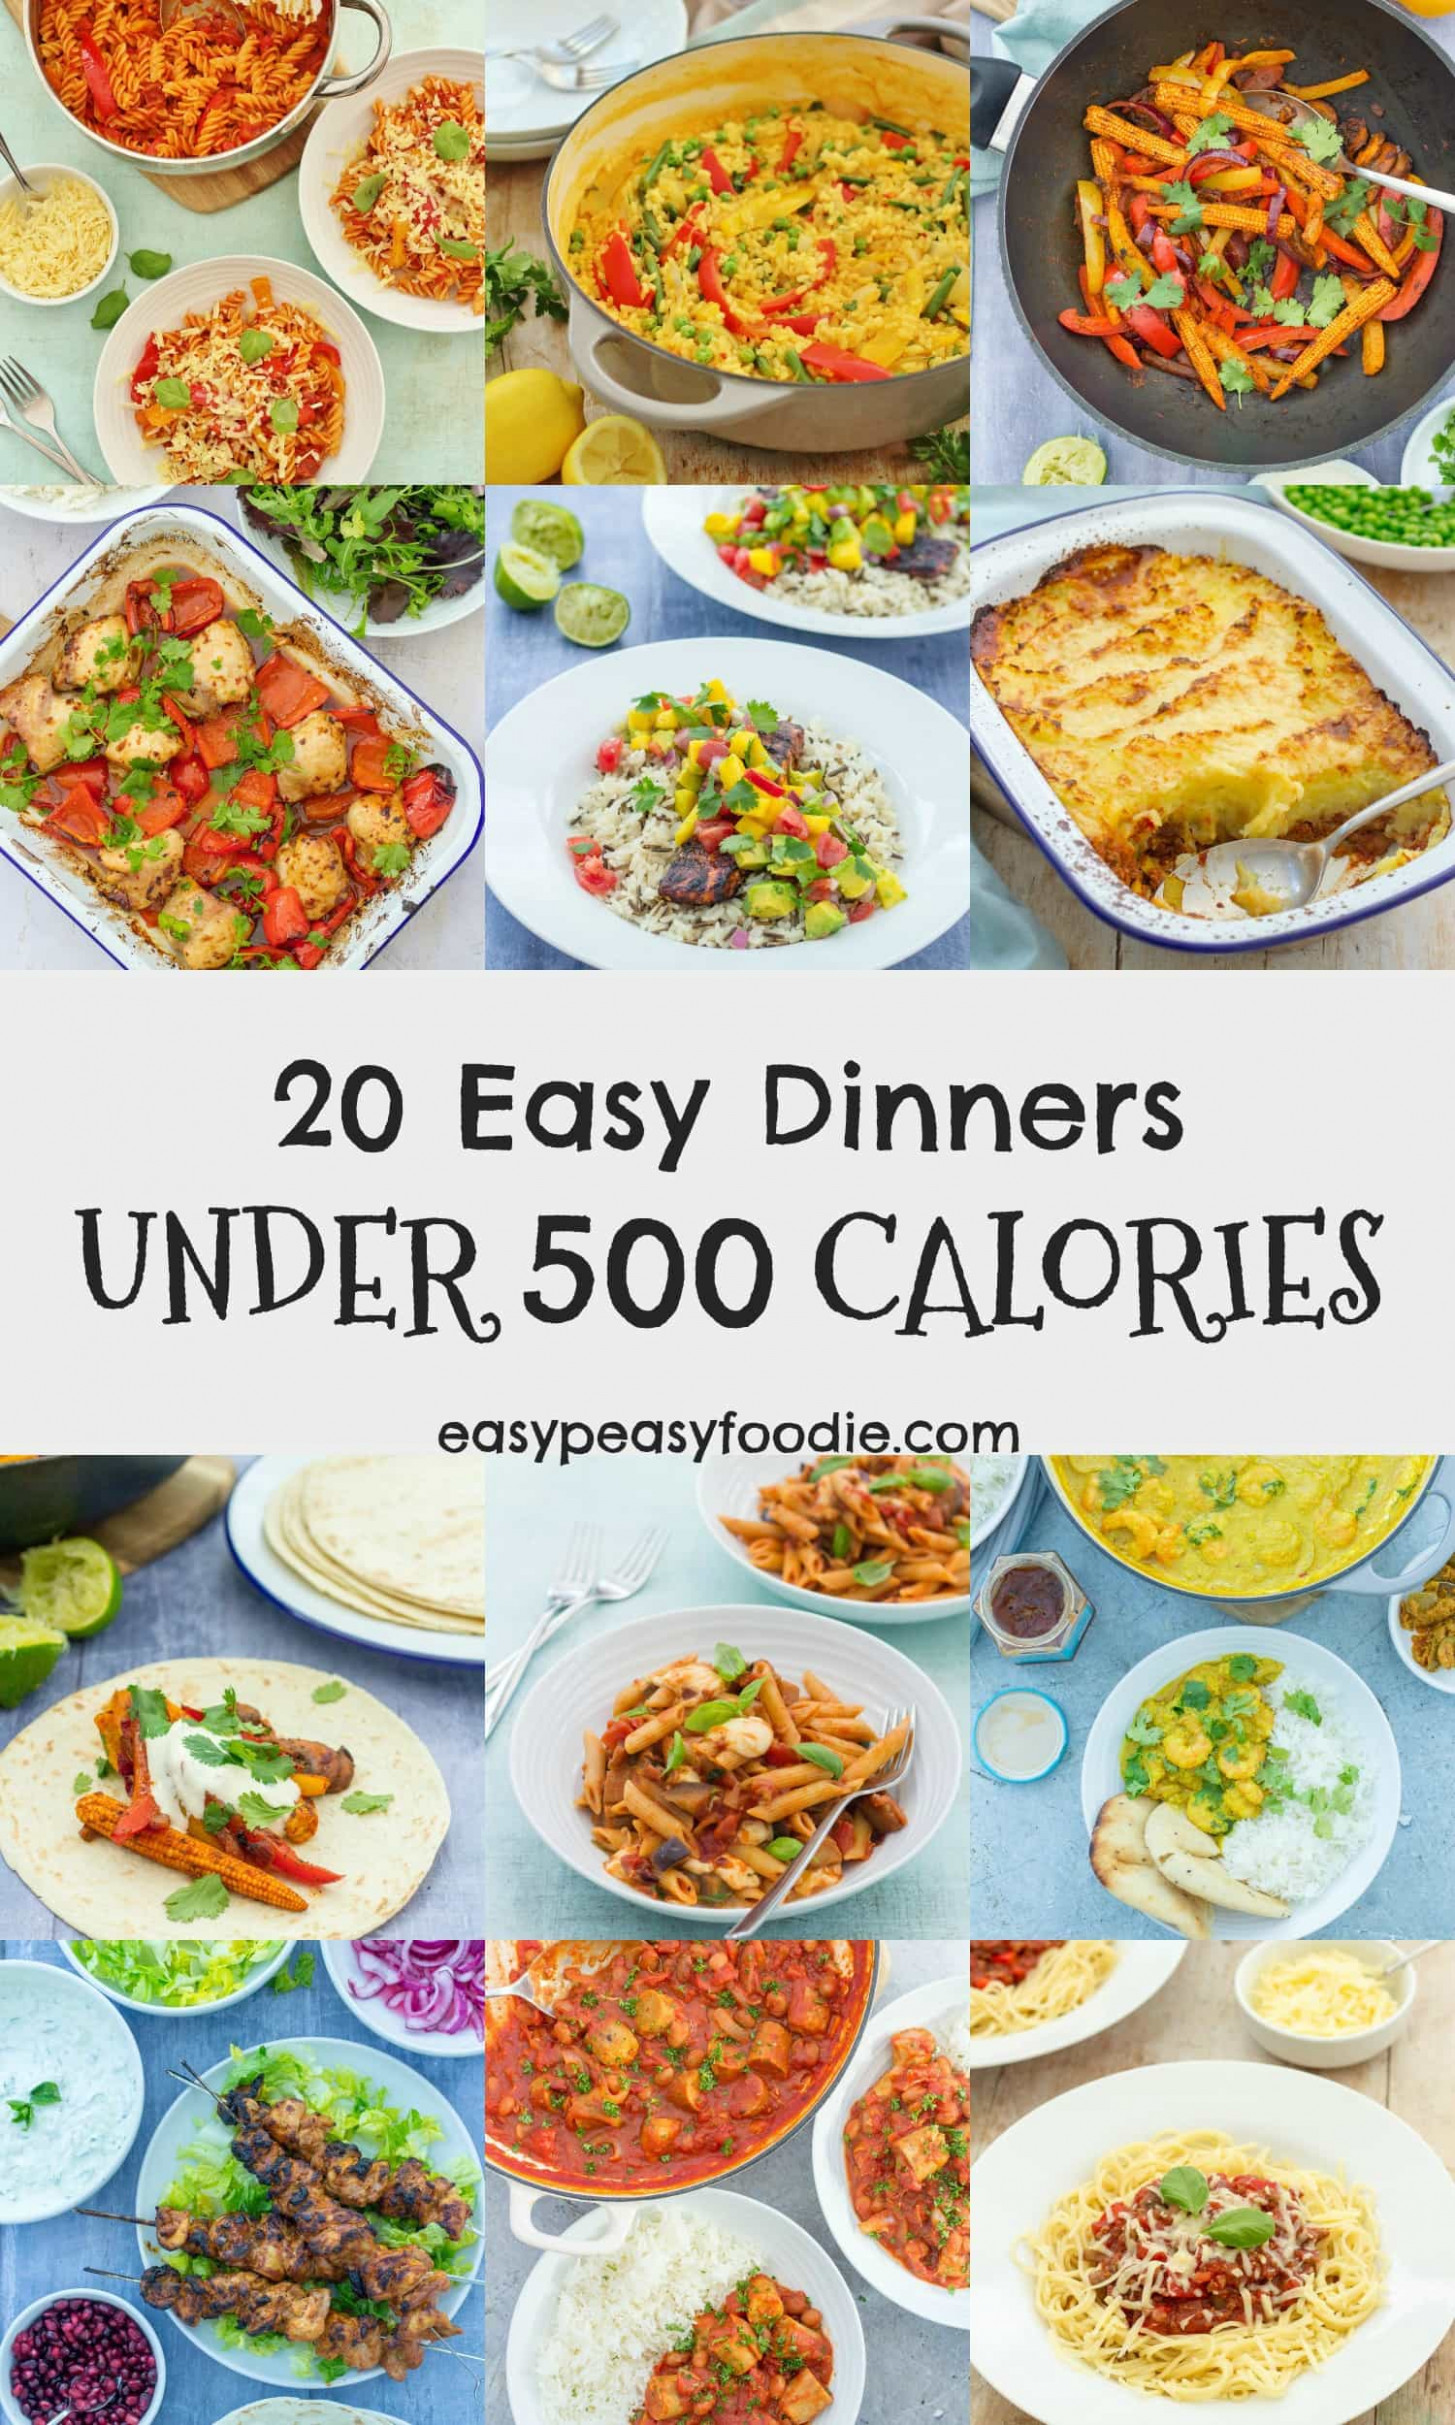 20 Easy Dinners Under 500 Calories - Easy Peasy Foodie - Dinner Recipes Less Than 500 Calories